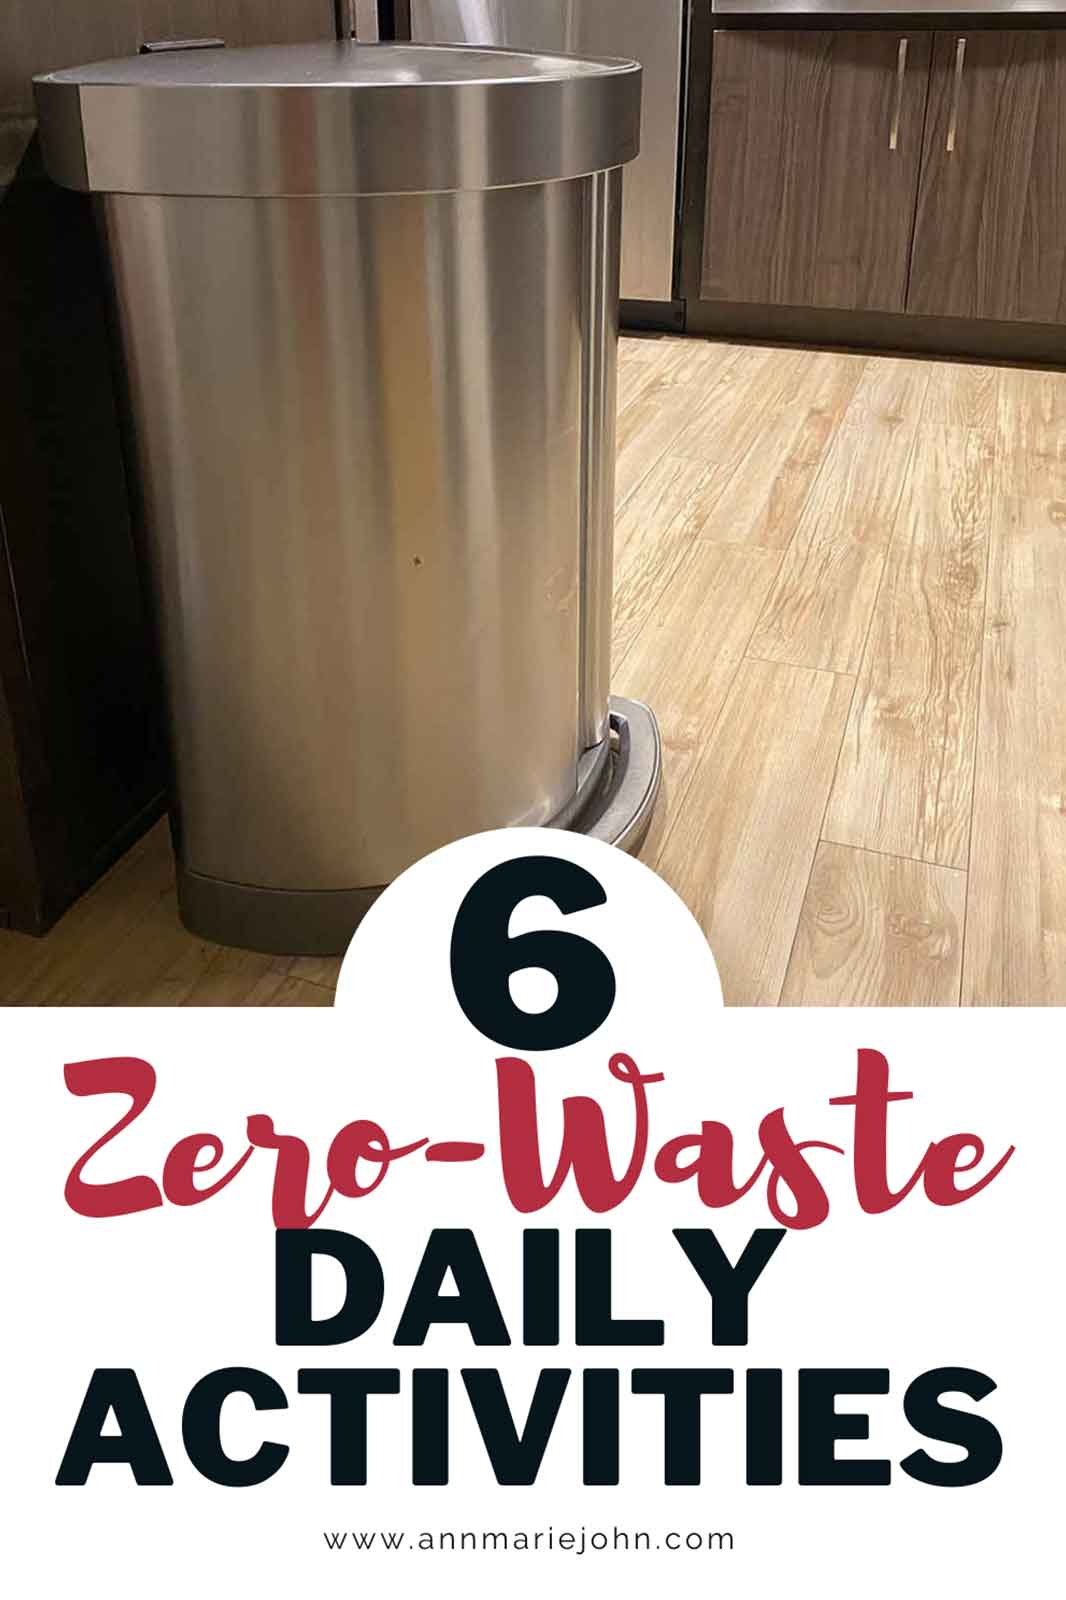 Daily Activities that Can Be Completely Zero-Waste